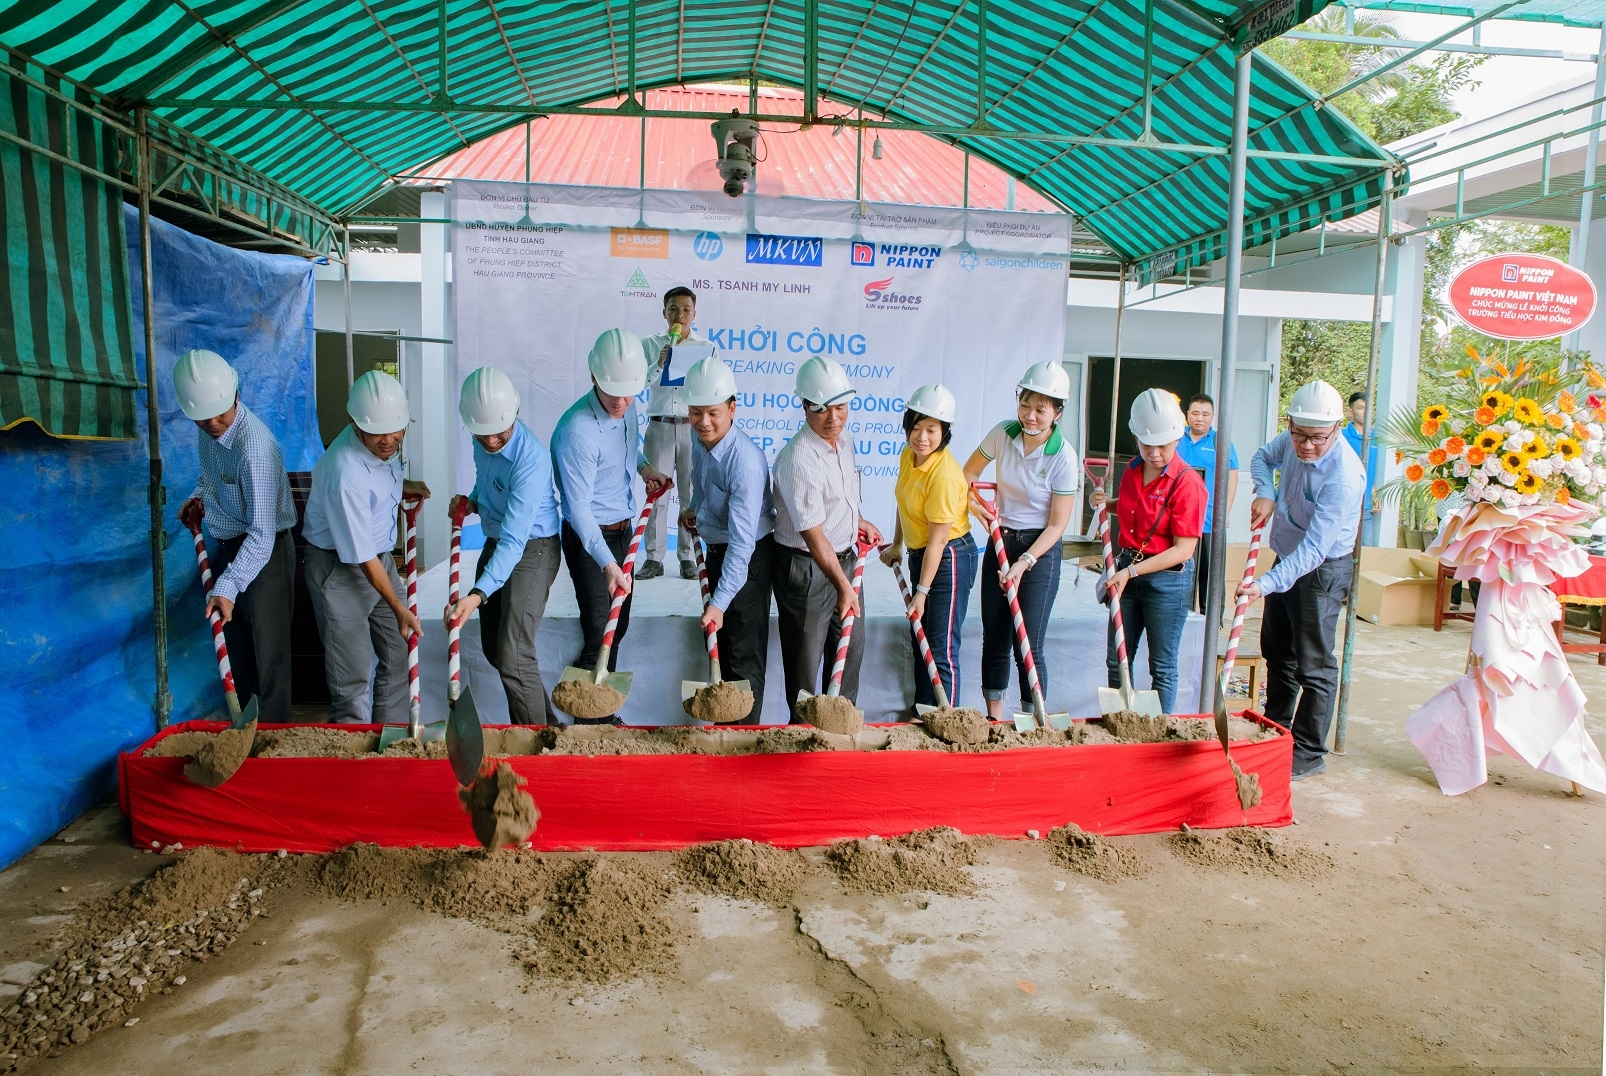 basf partners up with customers to rebuild school in remote area in hau giang